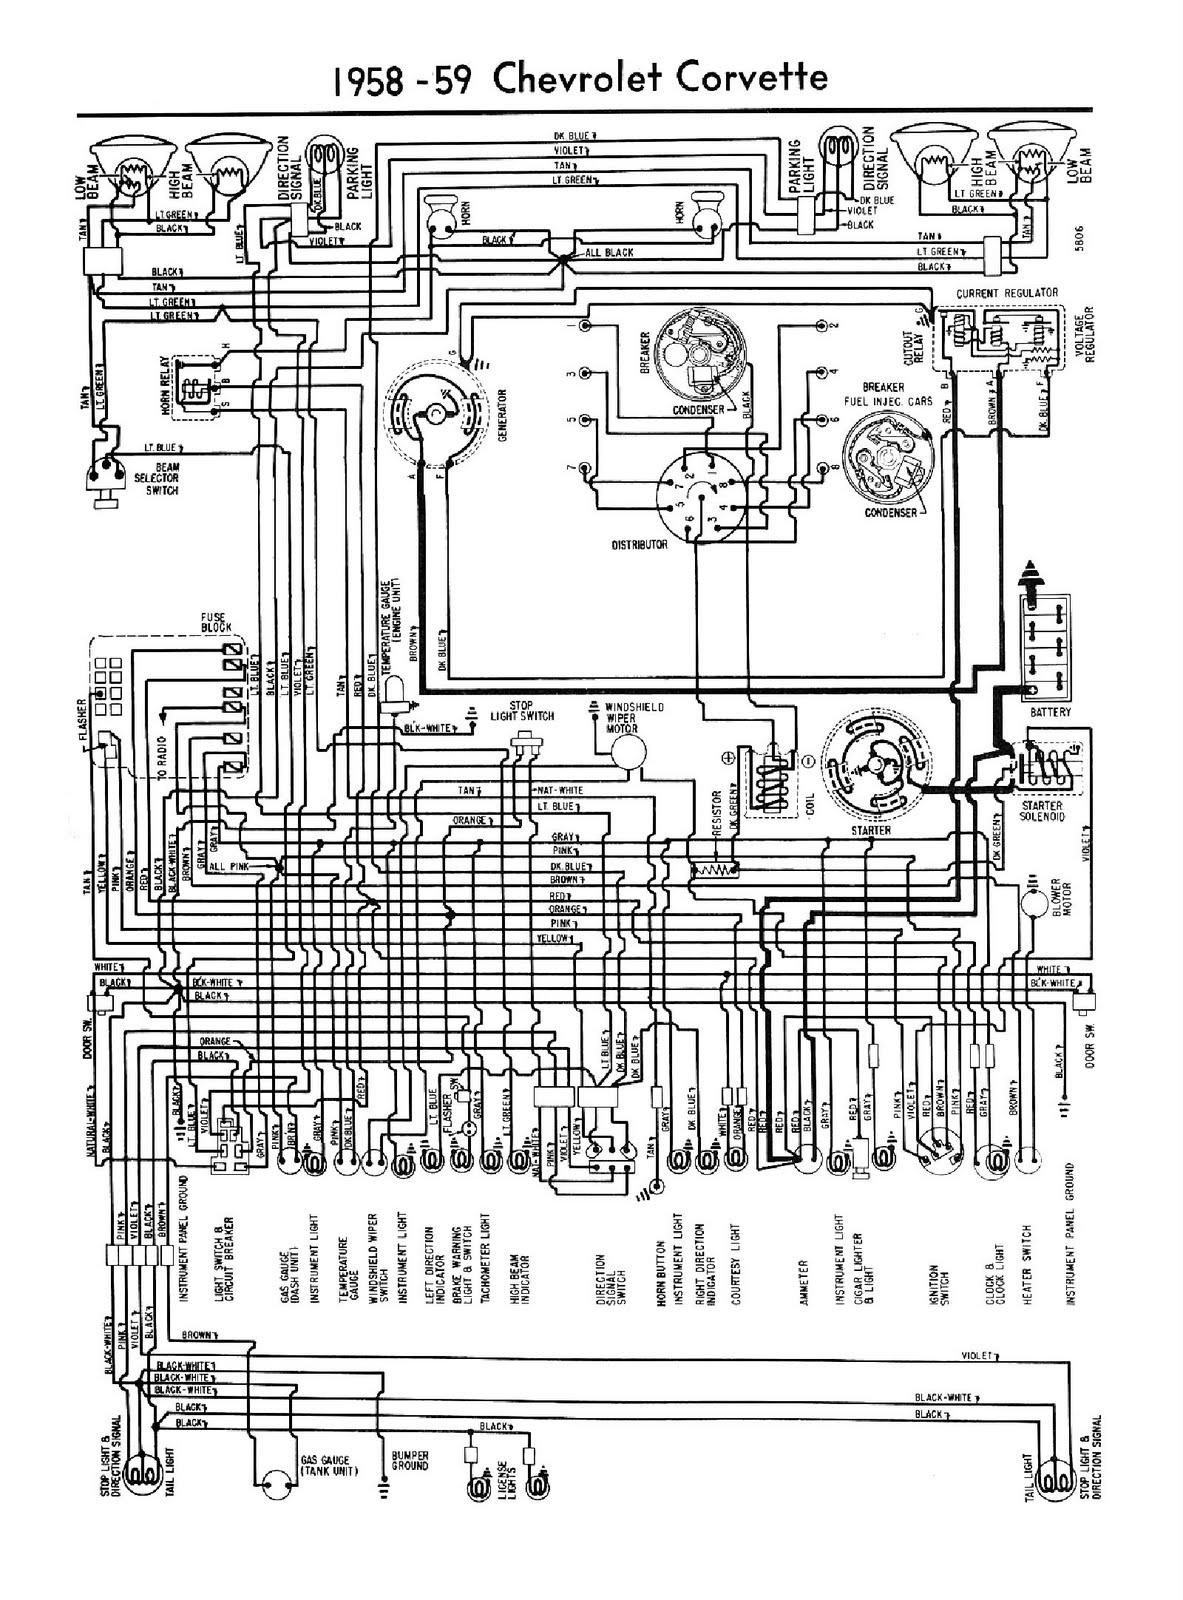 Diagram 84 Chevrolet Corvette Wiring Diagram Full Version Hd Quality Wiring Diagram Ppcdiagraml Centroricambicucine It